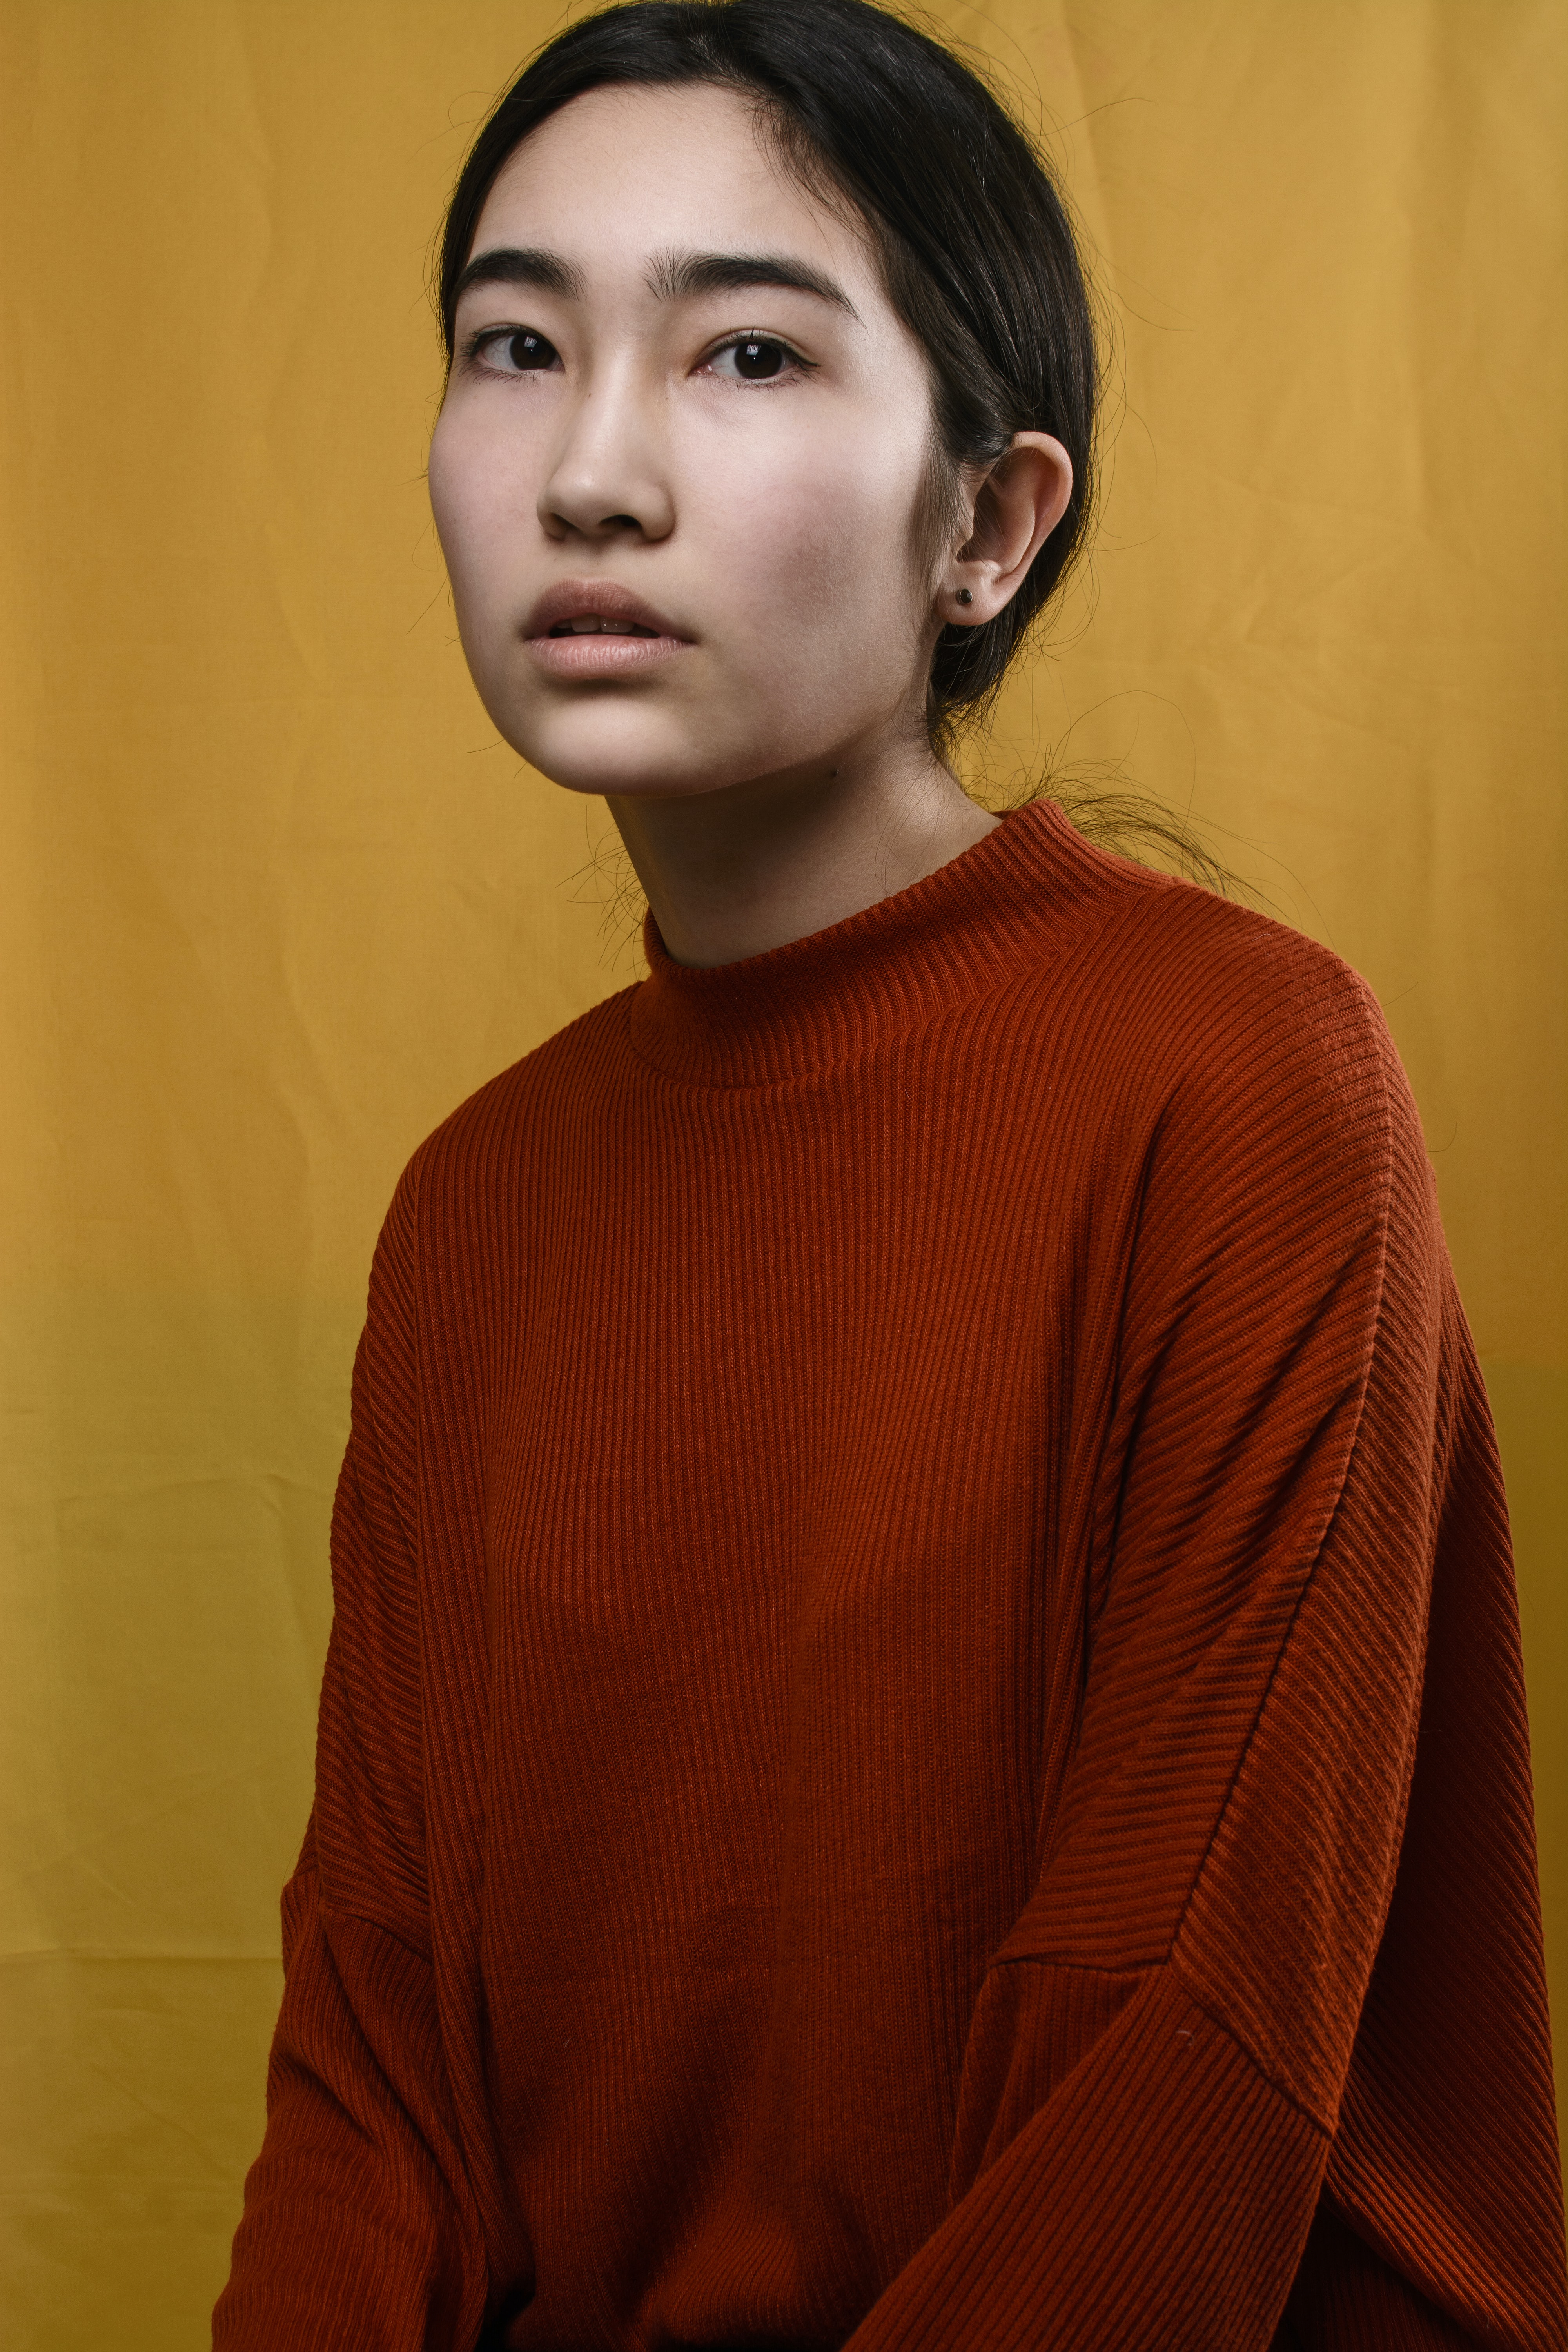 woman in red crew-neck sweater